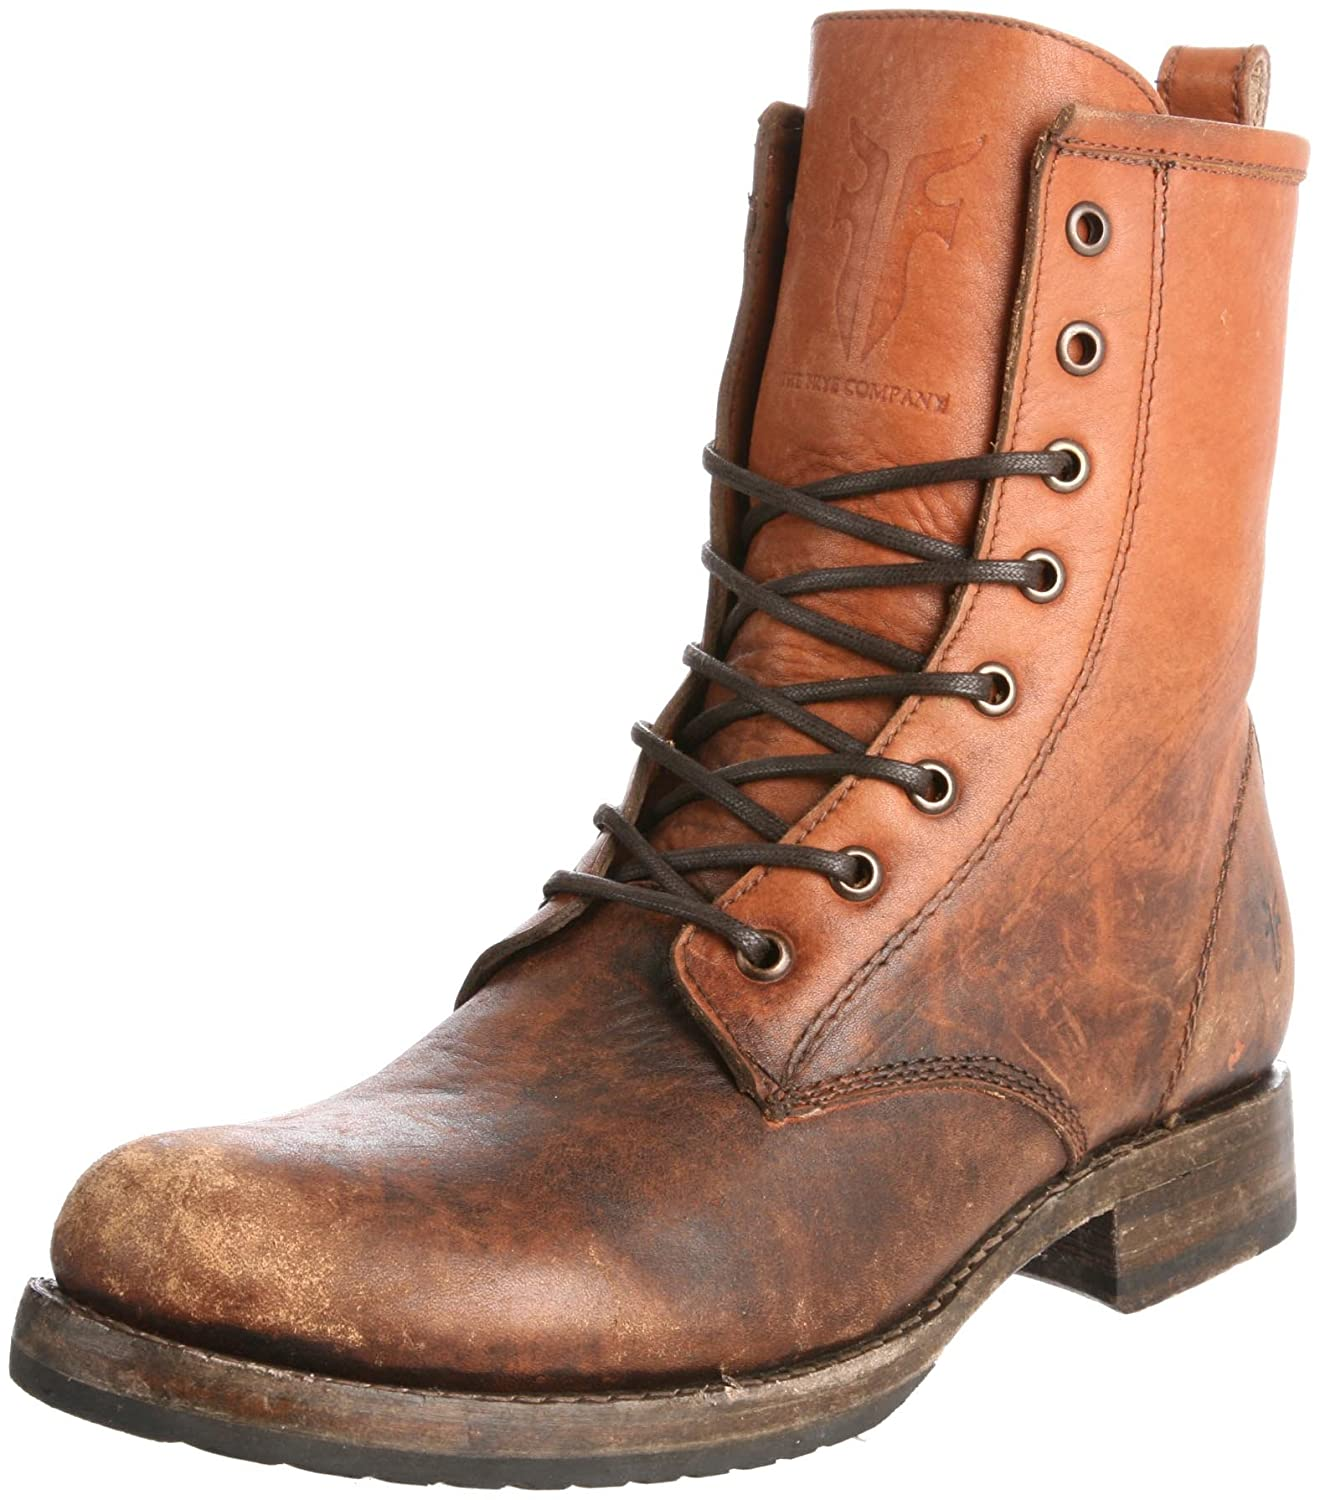 FRYE Women's Veronica Combat Boot B004OUVG82 5.5 B(M) US|Cognac Stone Washed-76272